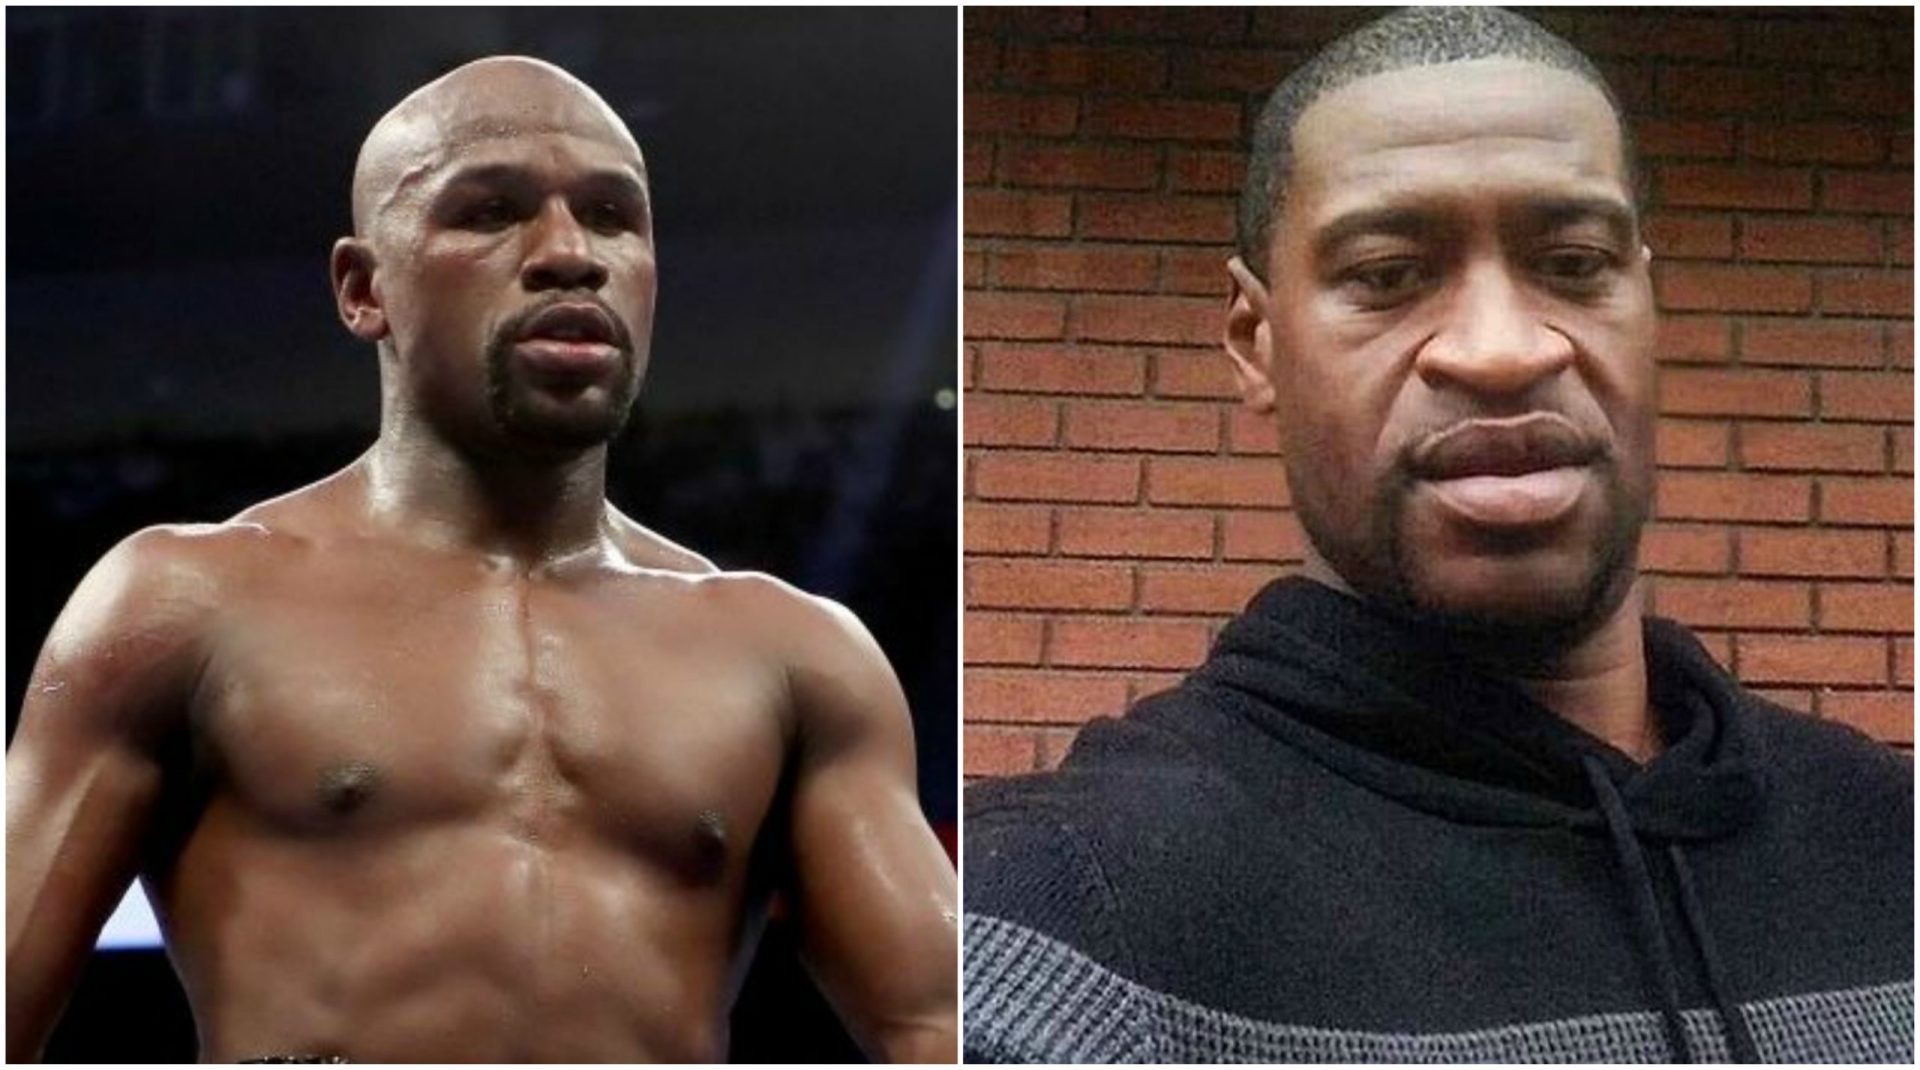 Classy Floyd Mayweather to fund countrywide funeral services for George Floyd - Floyd Mayweather